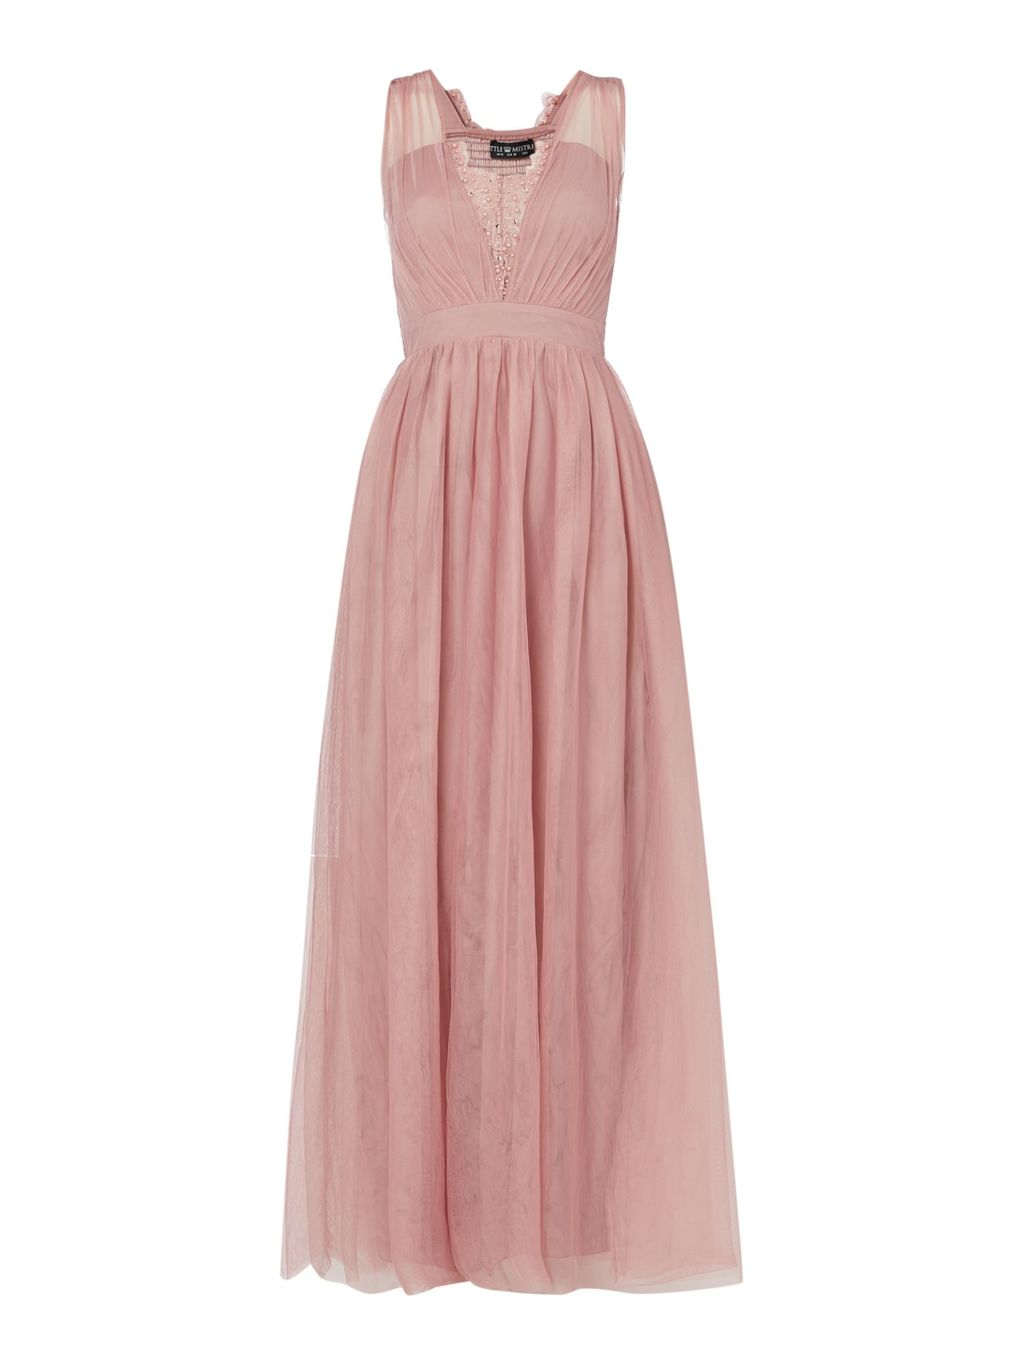 Sleeveless Chiffon Maxi Dress, Pink - sleeve style: wide vest straps; neckline: v-neck; pattern: plain; style: maxi dress; length: ankle length; bust detail: added detail/embellishment at bust; predominant colour: pink; fit: soft a-line; fibres: polyester/polyamide - 100%; occasions: occasion; sleeve length: sleeveless; texture group: sheer fabrics/chiffon/organza etc.; pattern type: fabric; pattern size: standard; embellishment: beading; season: s/s 2016; wardrobe: event